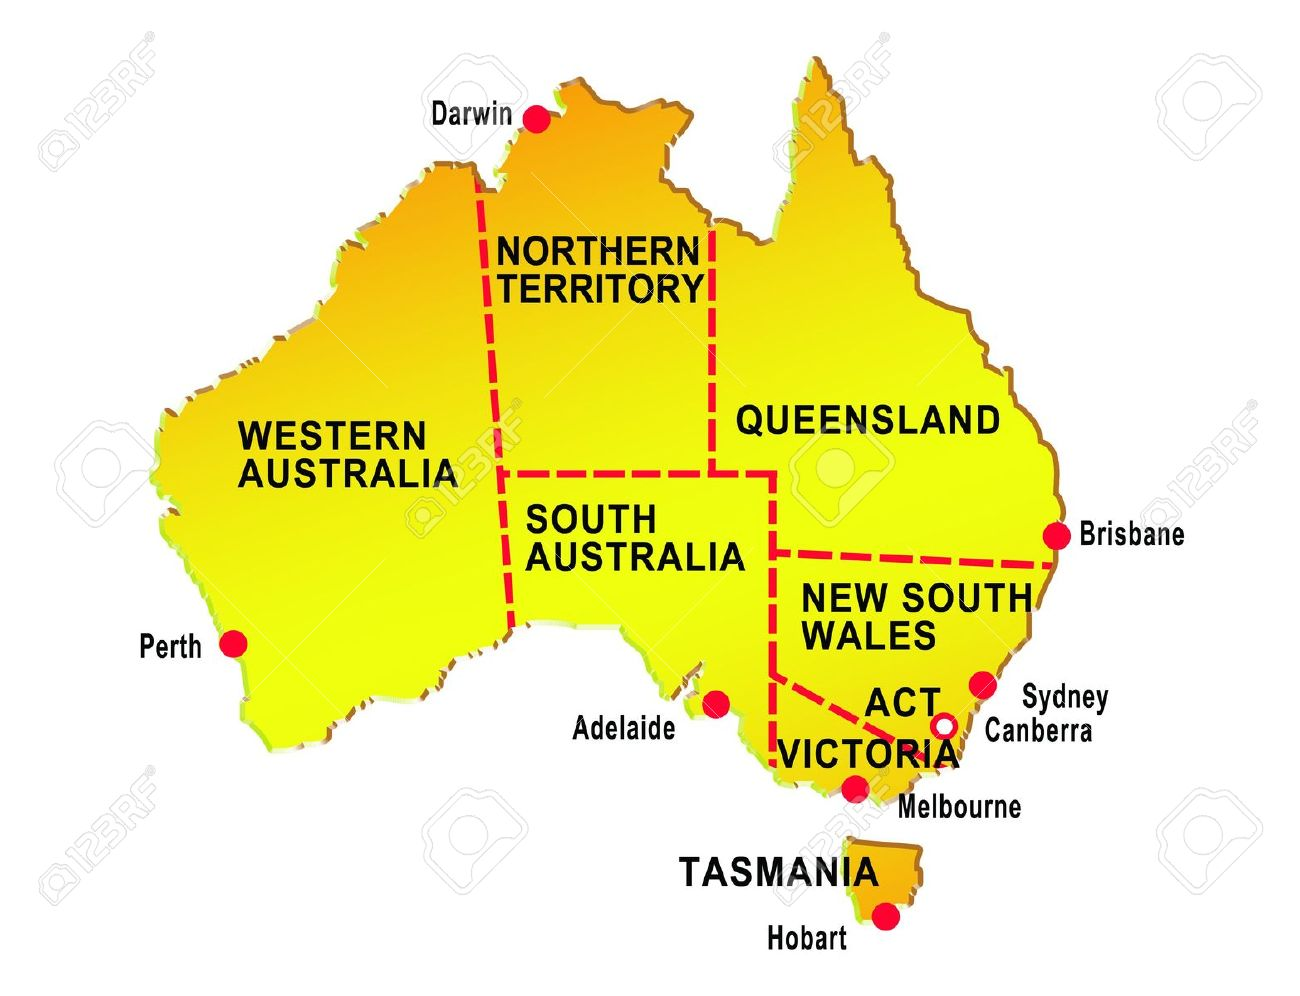 Major Cities In Australia Map.Map Of Australia Showing Eight States And Major Cities Isolated